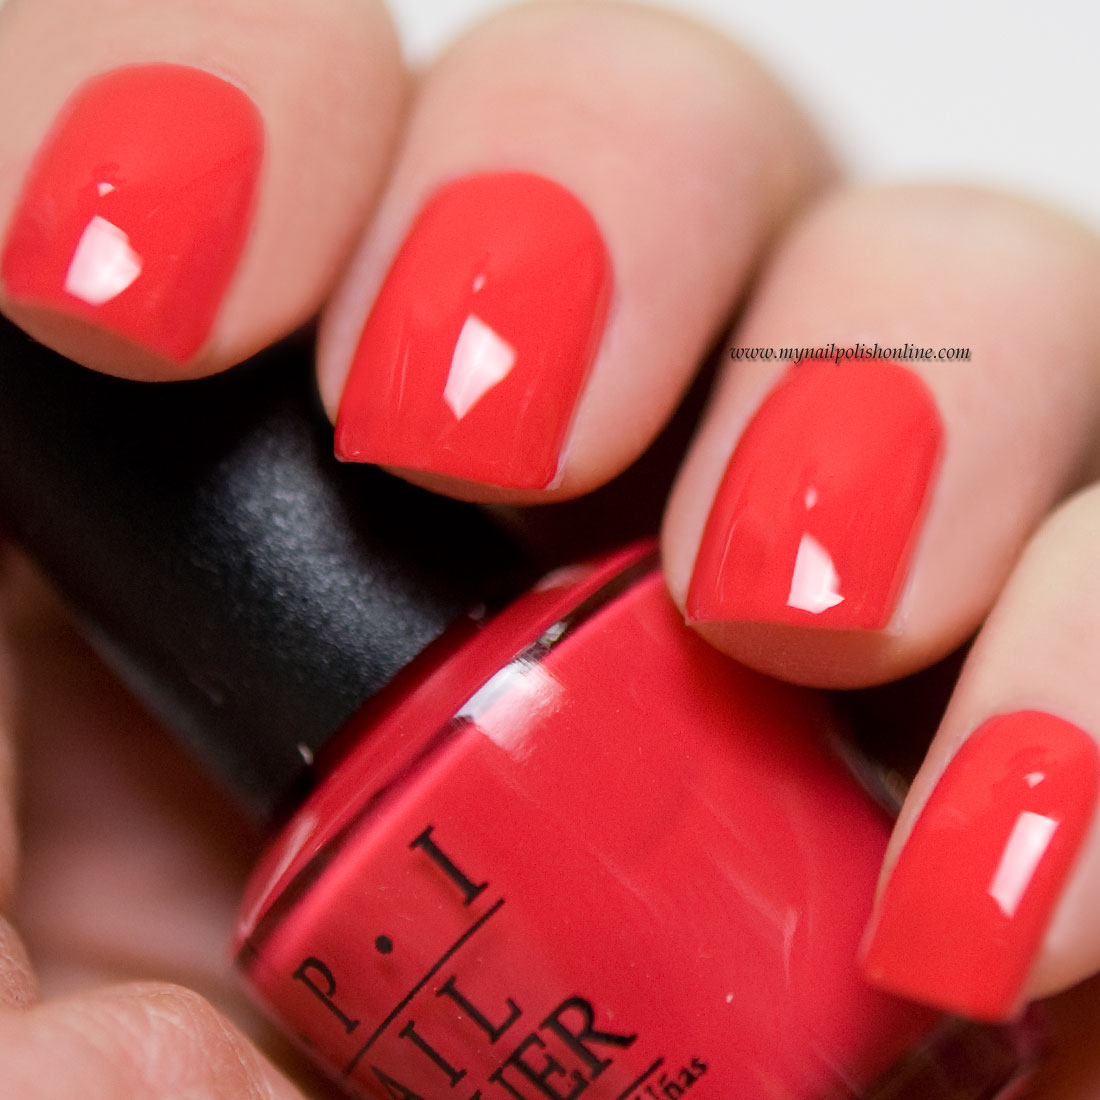 OPI - 5 Apples Tall